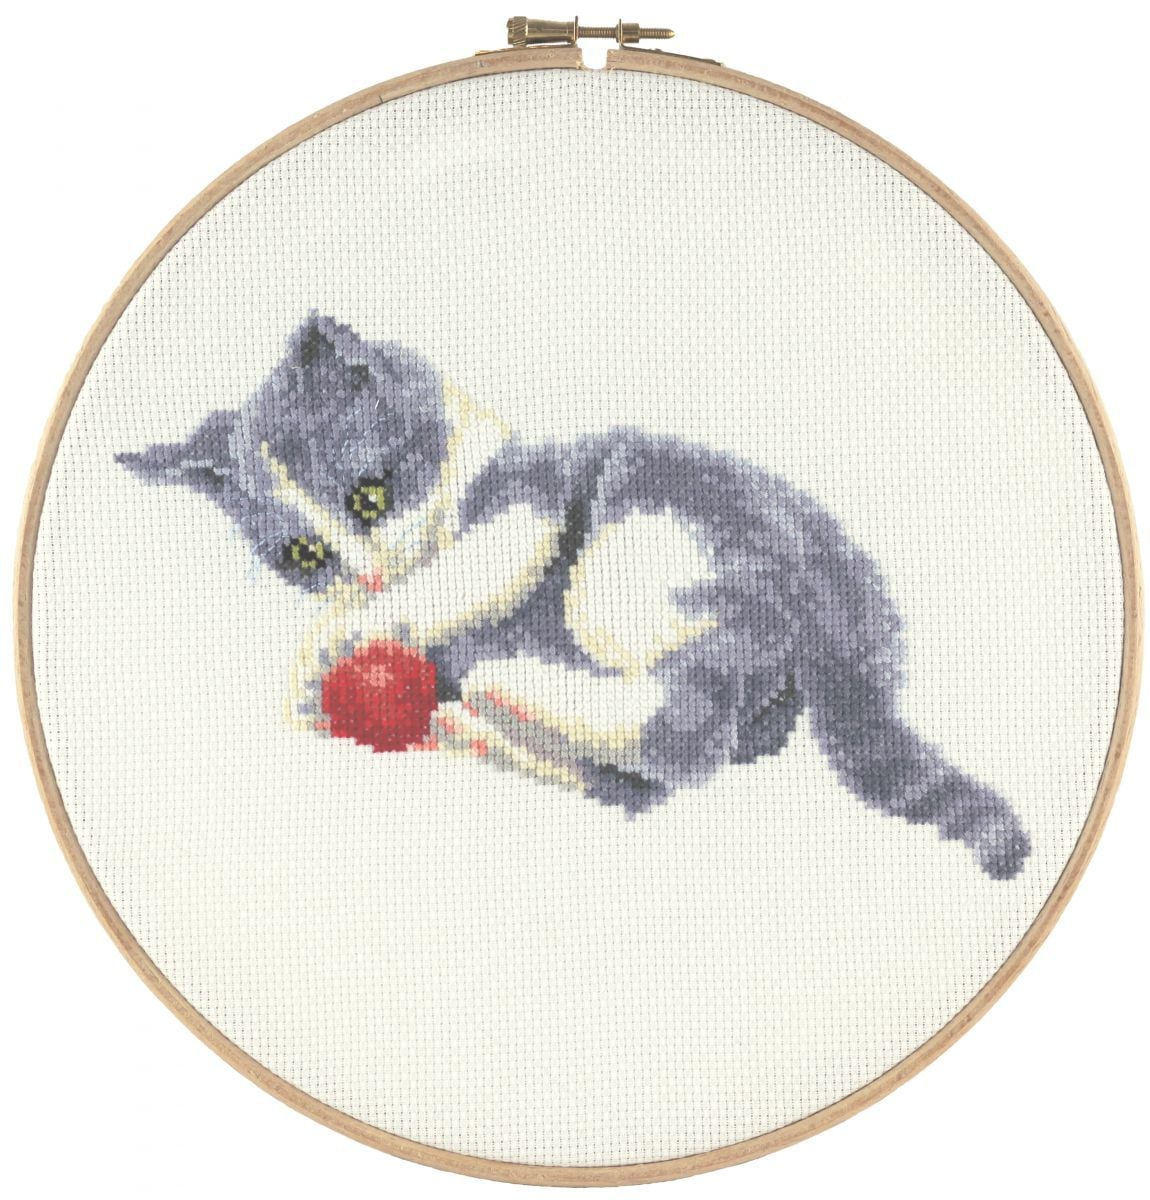 embroidery kit cute playing kitten and wool francien van westering